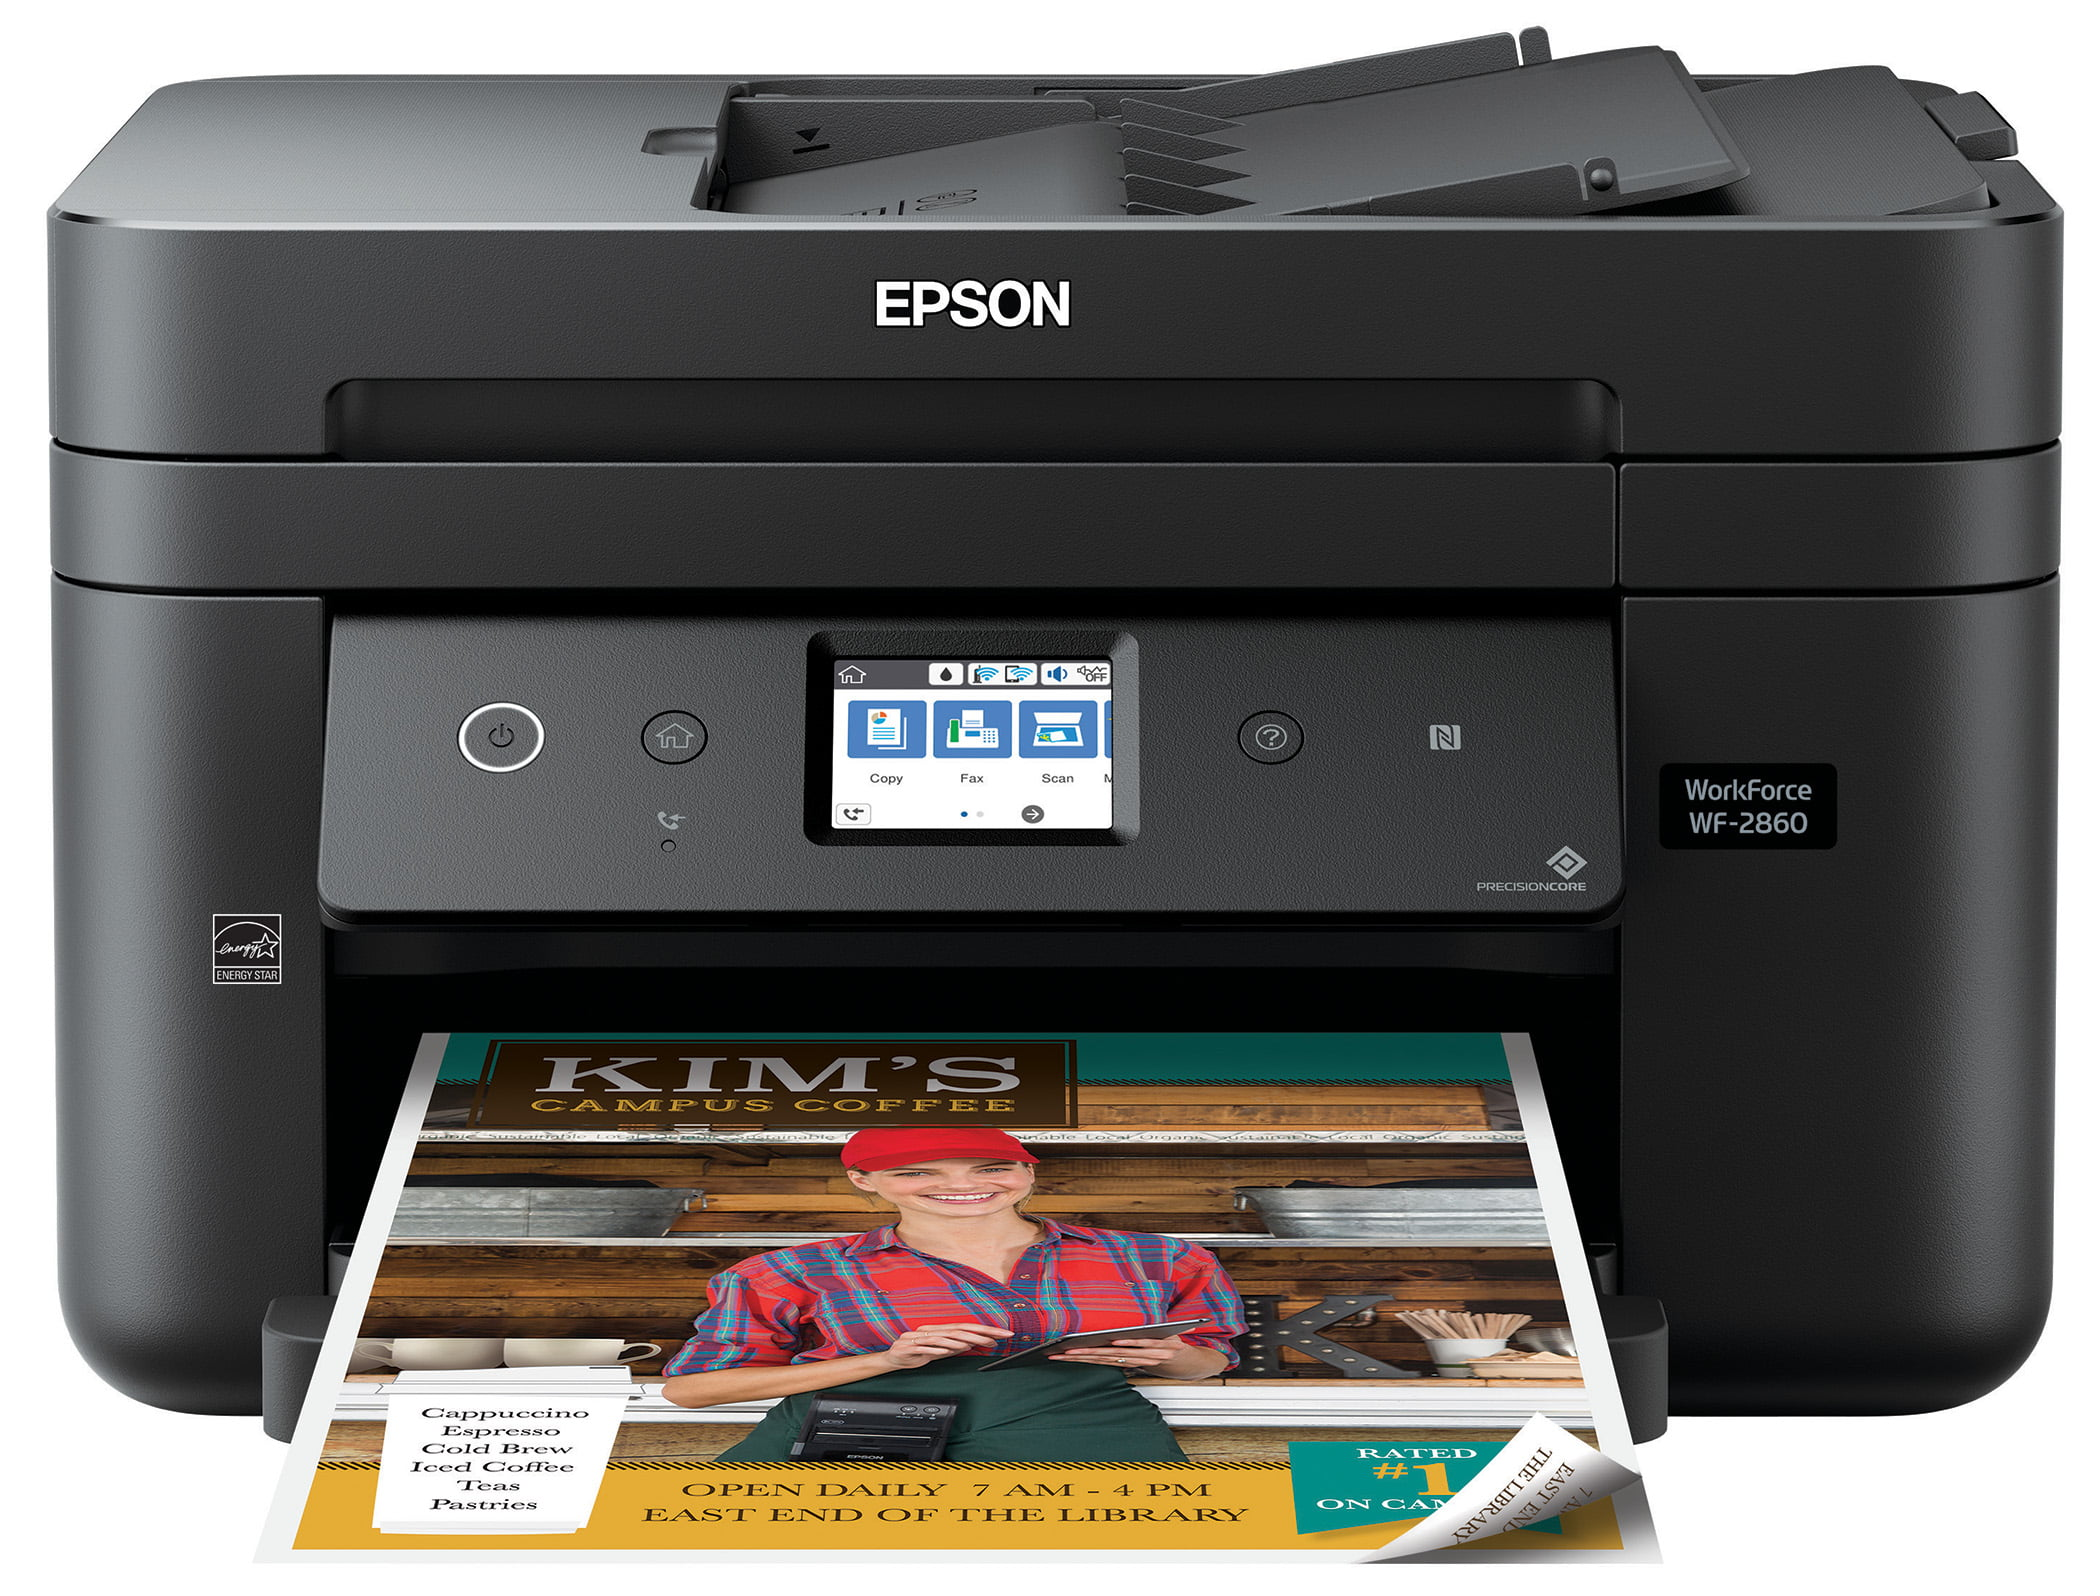 Epson WorkForce WF-2860 All-in-One Wireless Color Printer with Scanner, Copier, Fax, Ethernet, Wi-Fi Direct and NFC by Epson